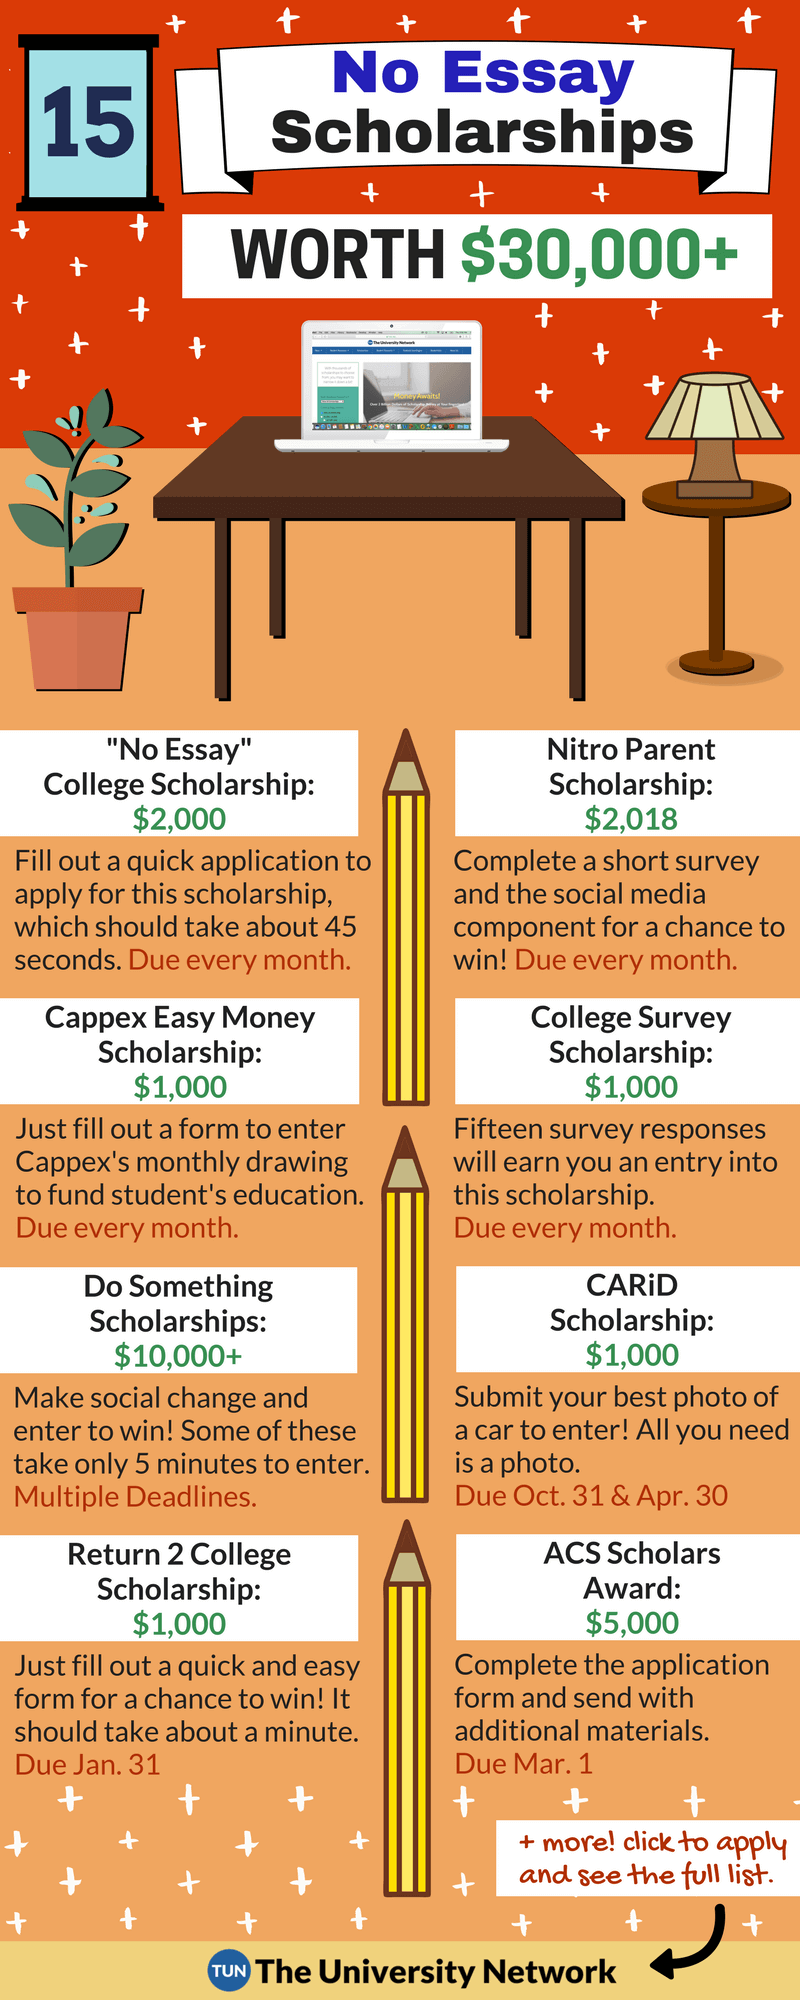 022 Essay Example Non Scholarships Imposing No For High School Seniors 2019 College Students 2017 Full